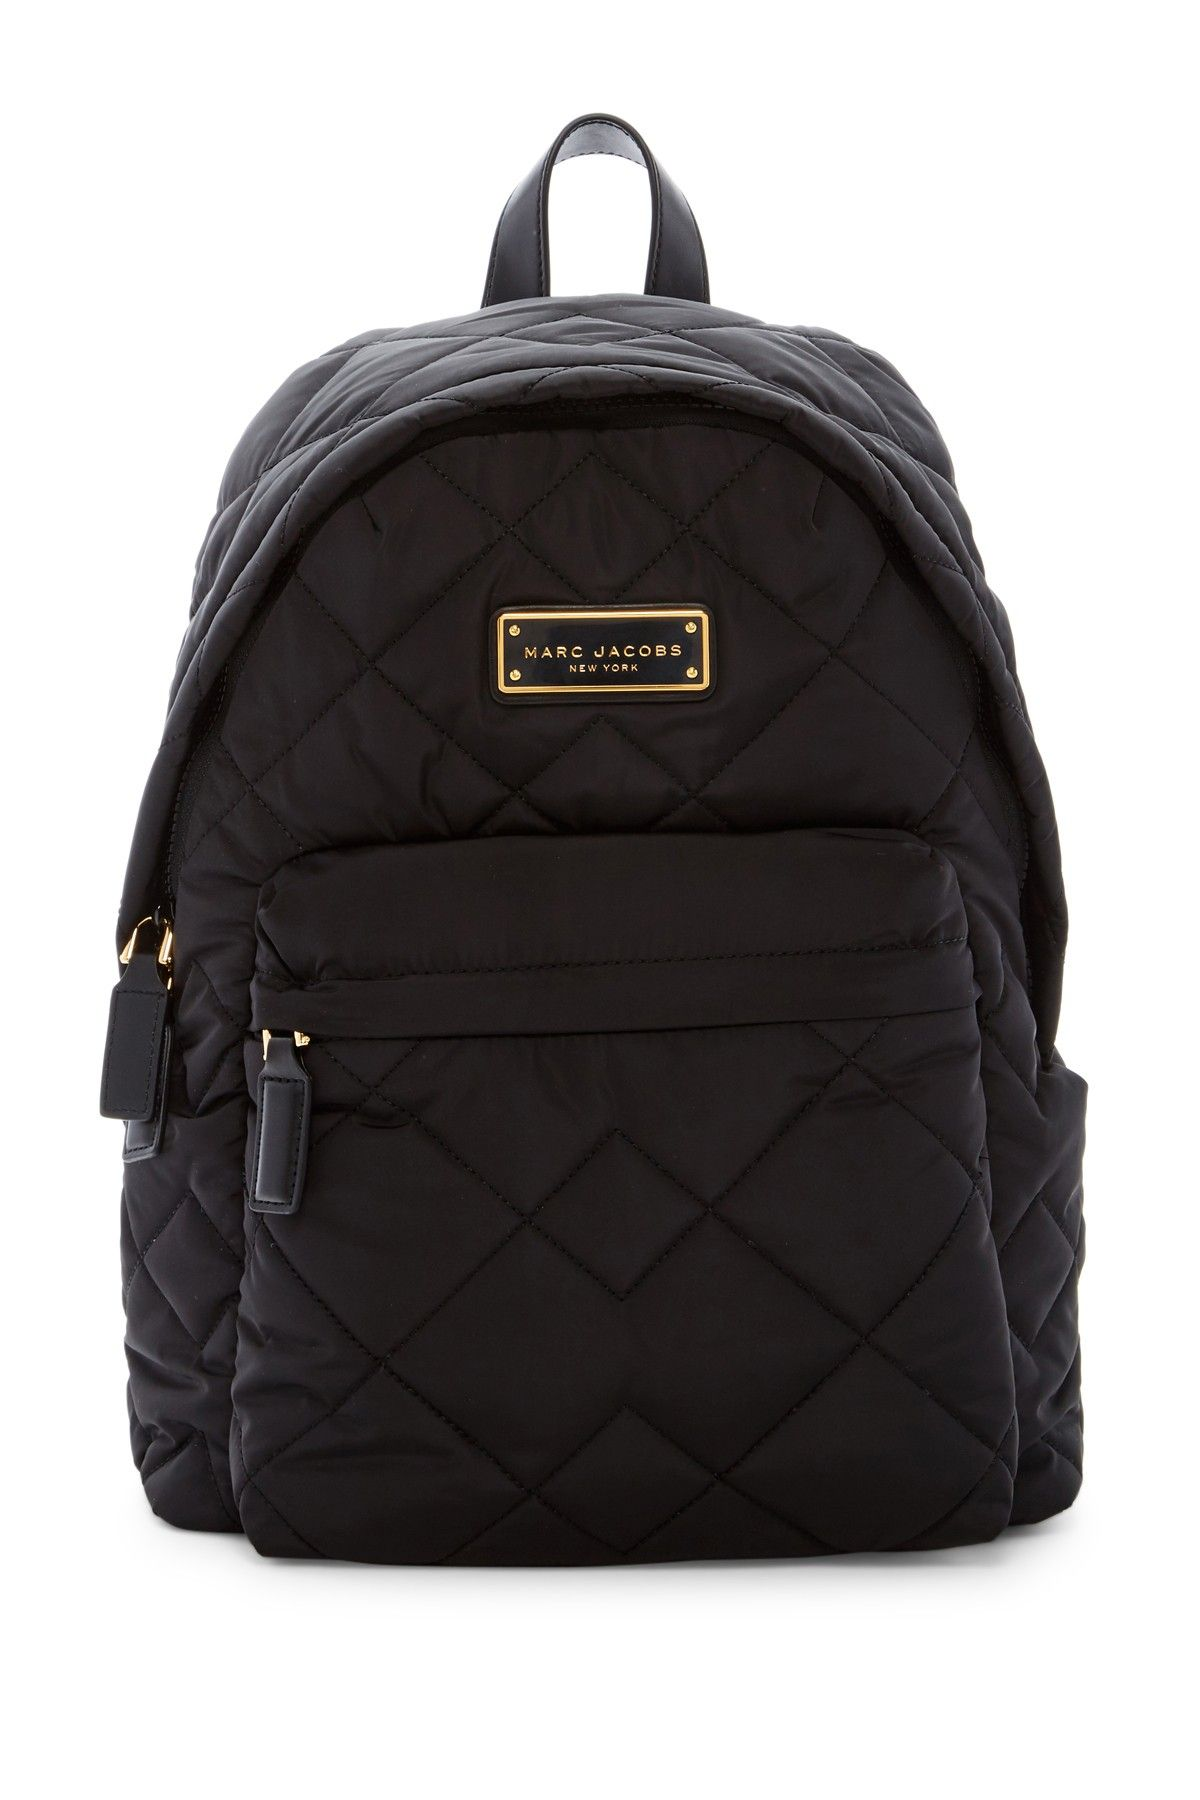 Quilted Nylon Backpack by Marc Jacobs on  nordstrom rack bd4bc60f211d3